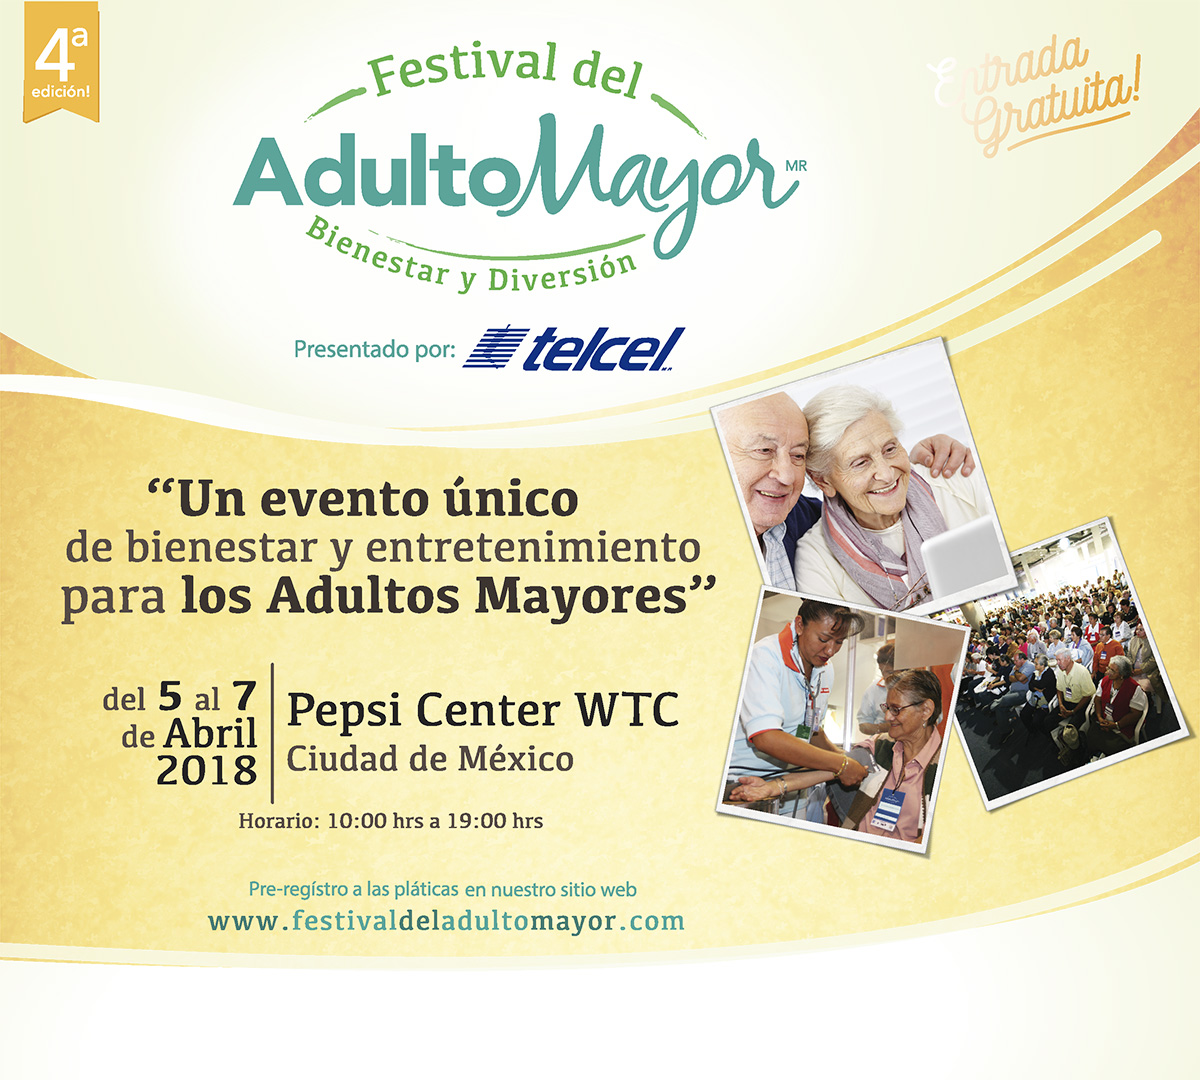 Festival del adulto mayor